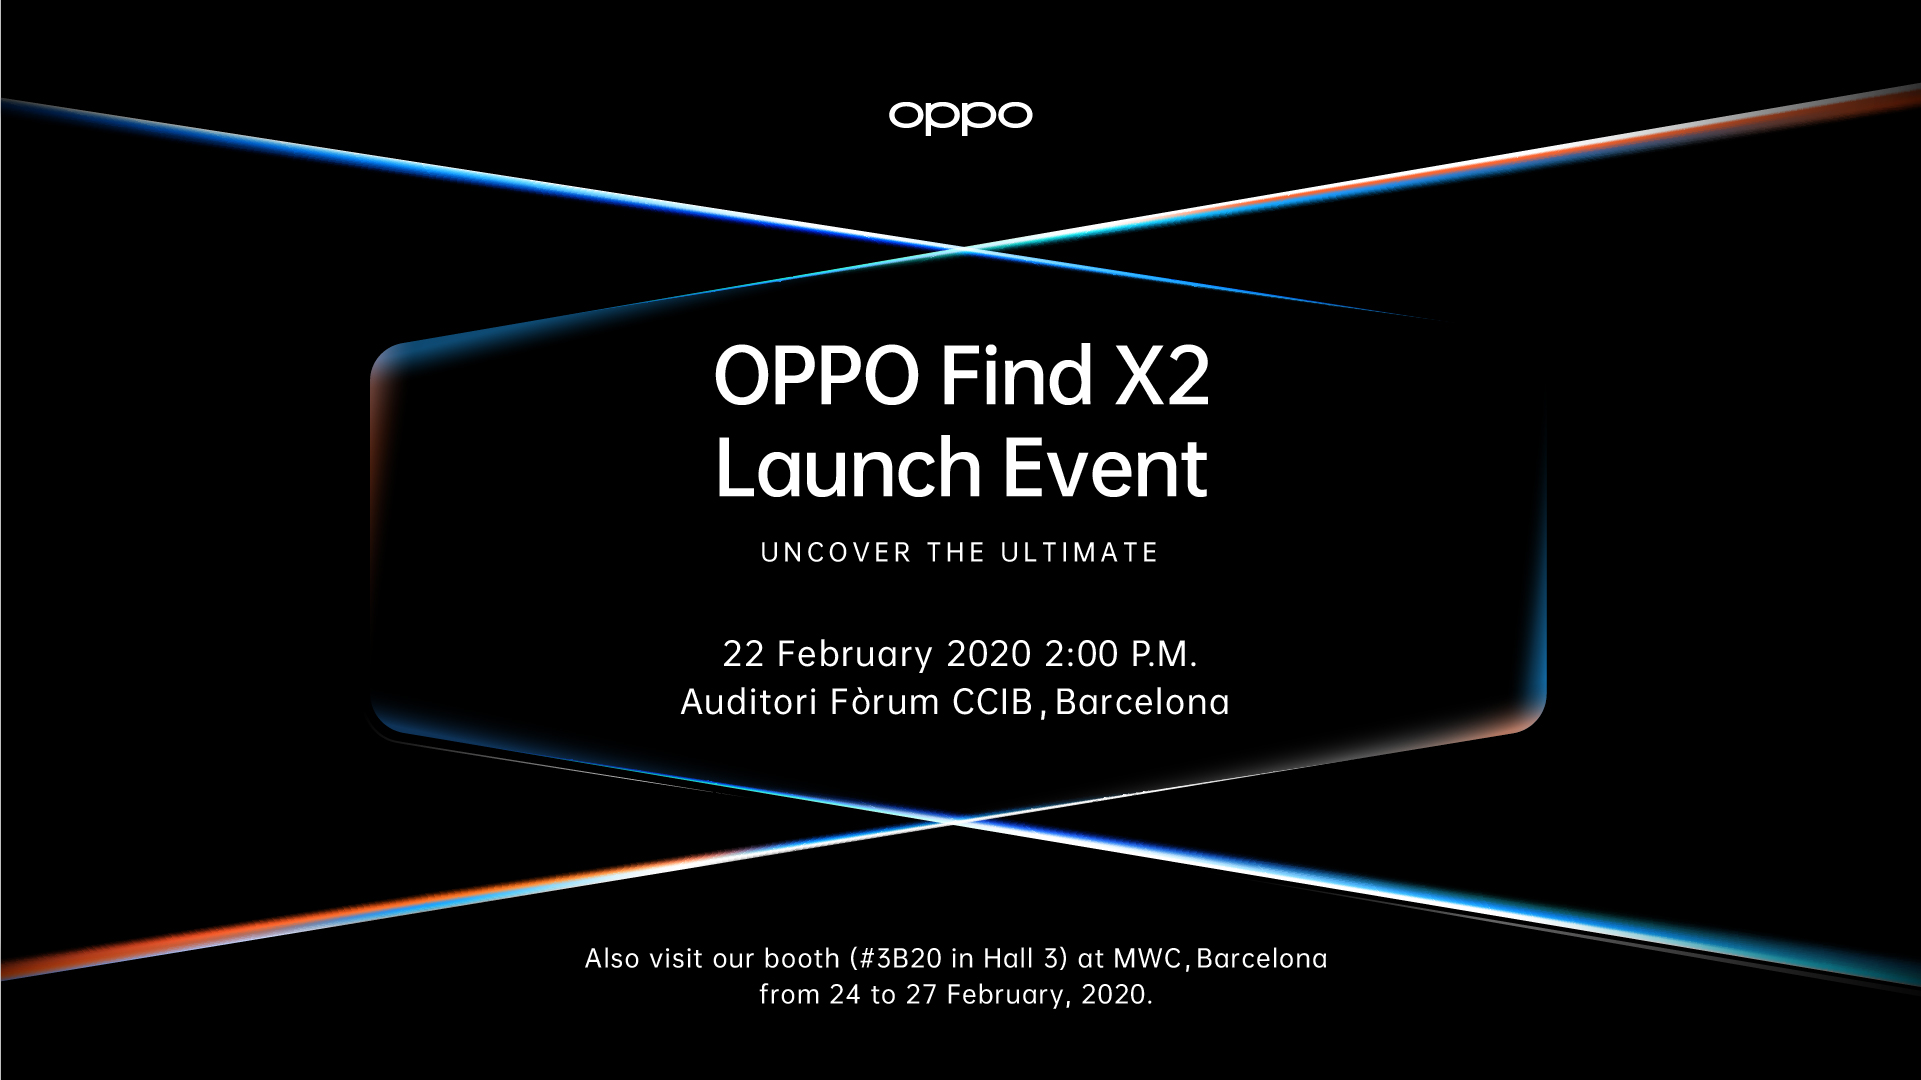 OPPO MWC 2020, OPPO Find X2 Set to Launch at MWC 2020!, Gadget Pilipinas, Gadget Pilipinas